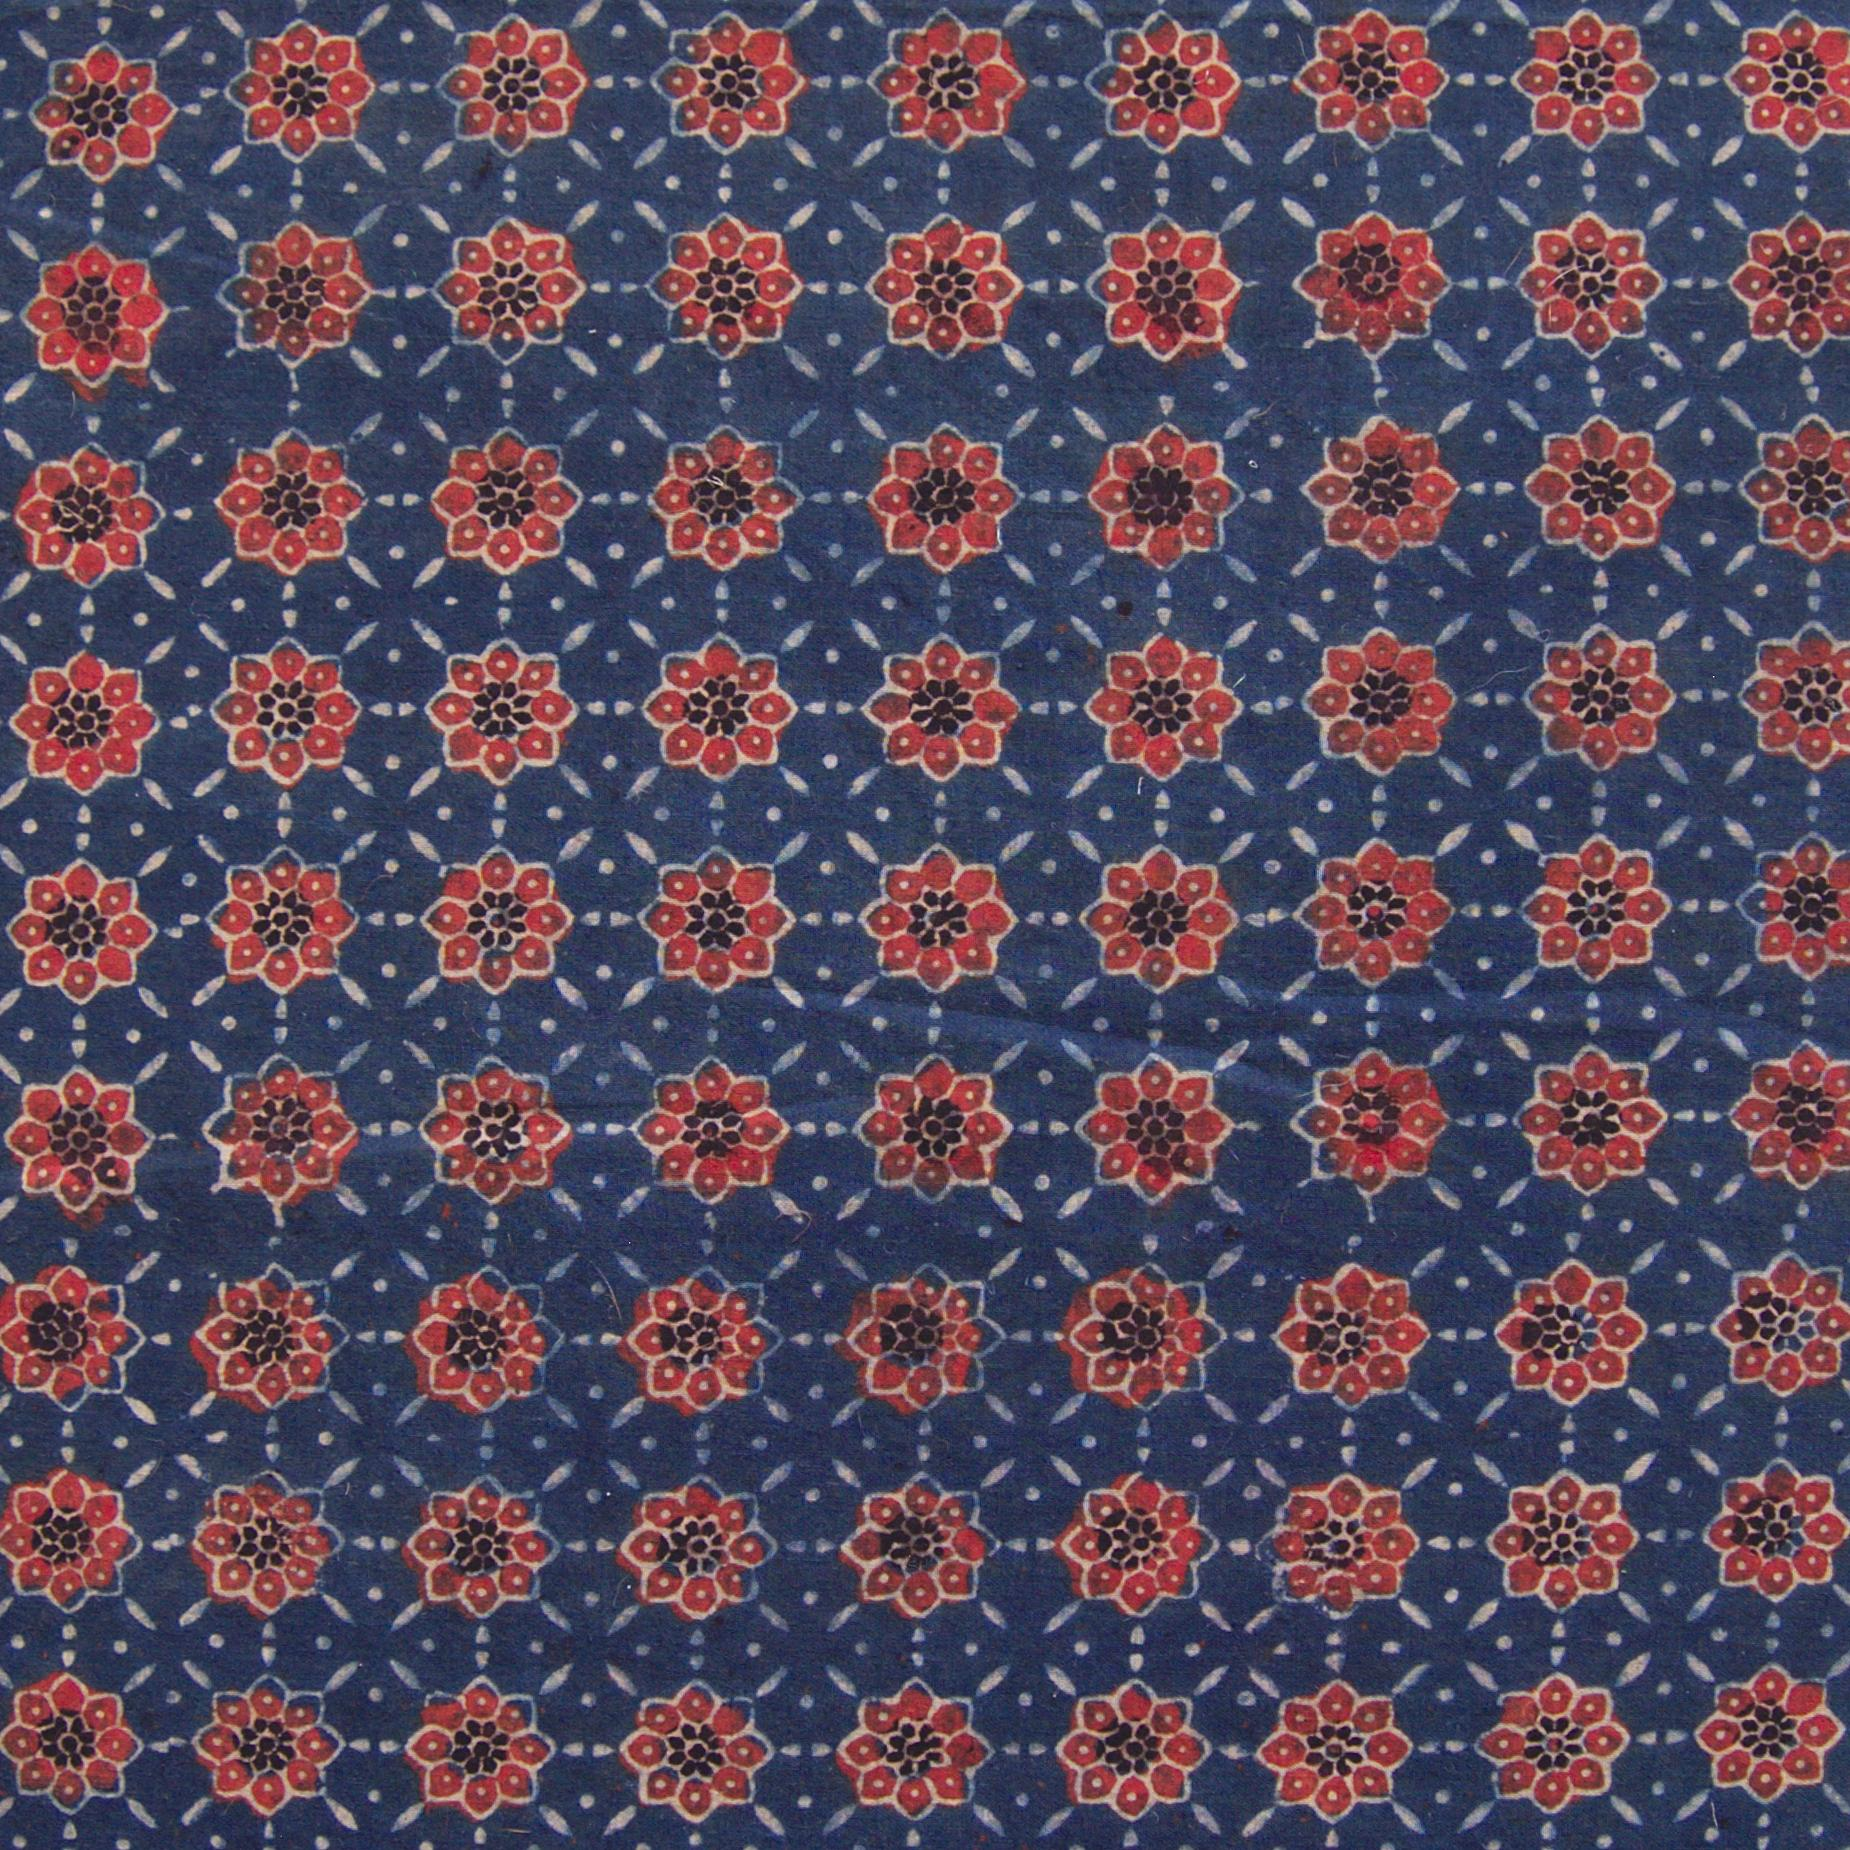 Block Printed Fabric, Cotton, Ajrak Design: Indigo Blue Base, Madder Red Flower. Close Up